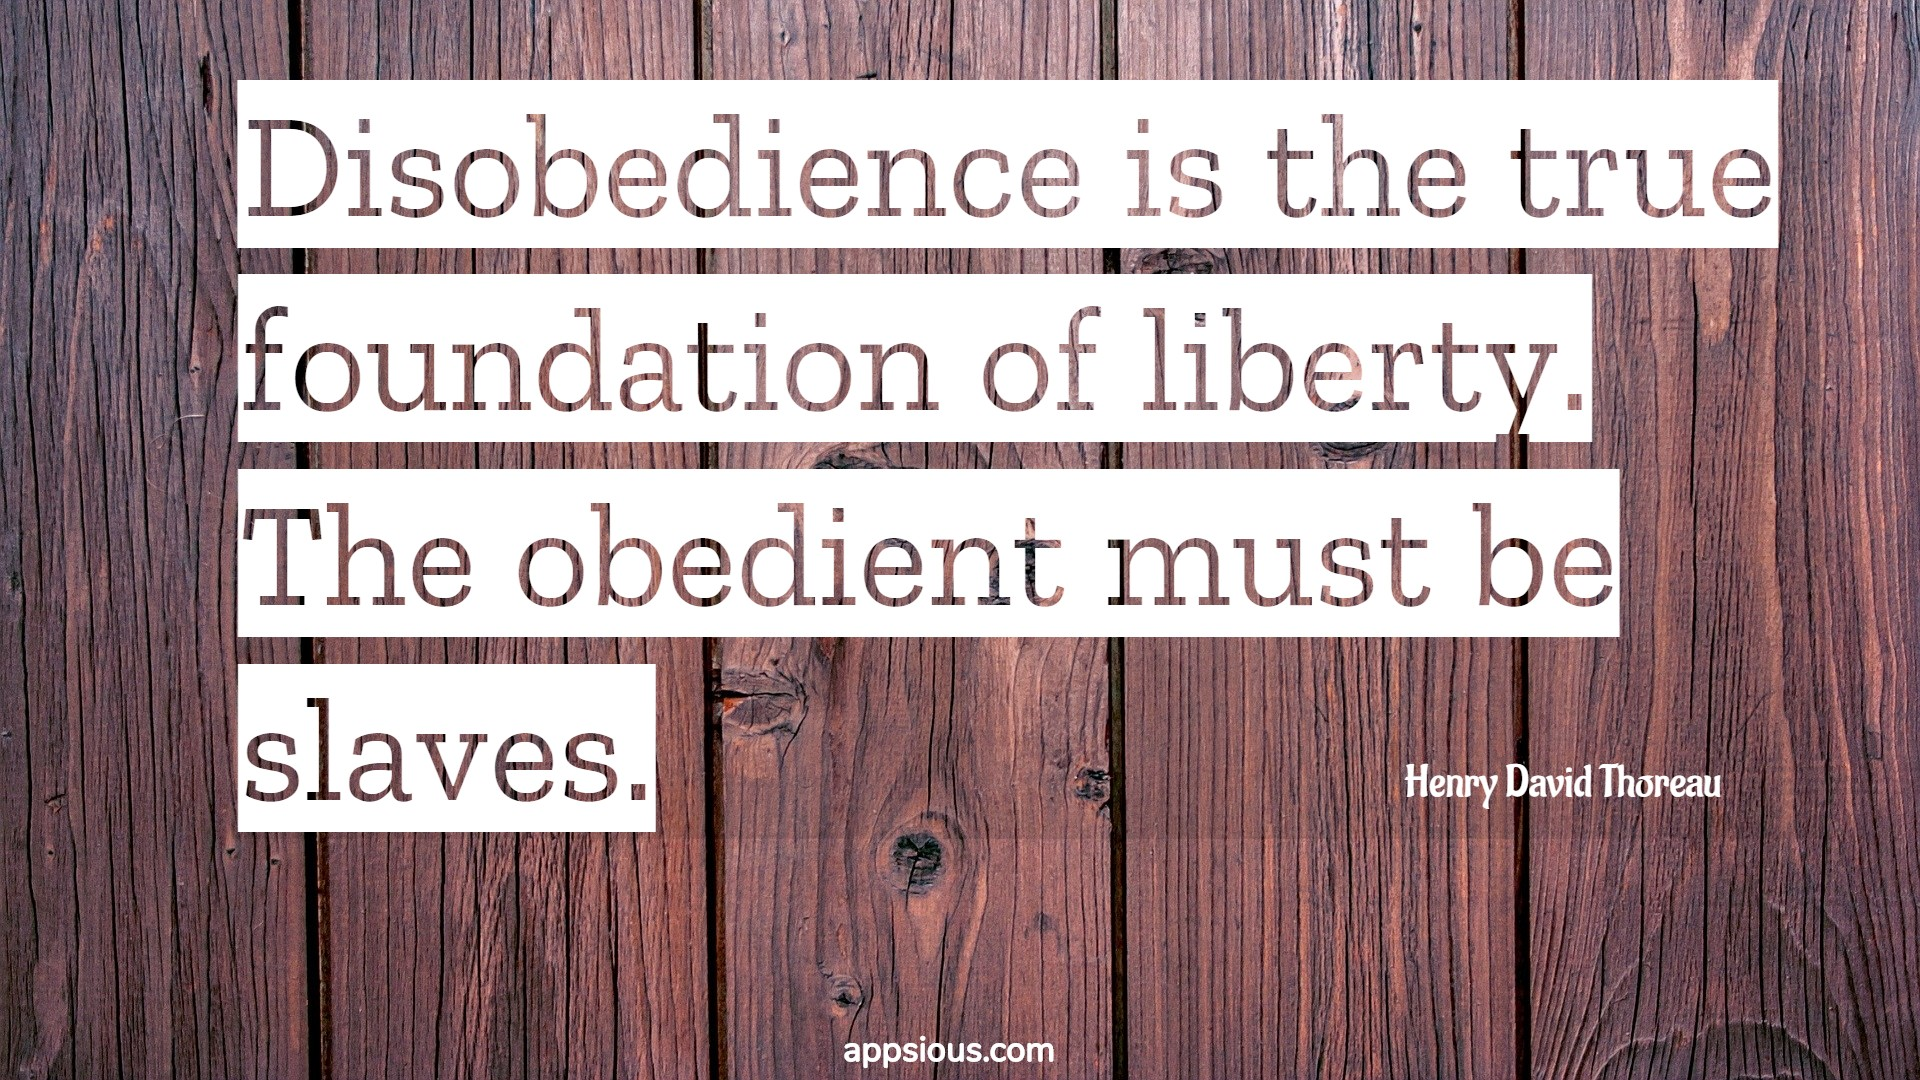 Disobedience is the true foundation of liberty. The obedient must be slaves.